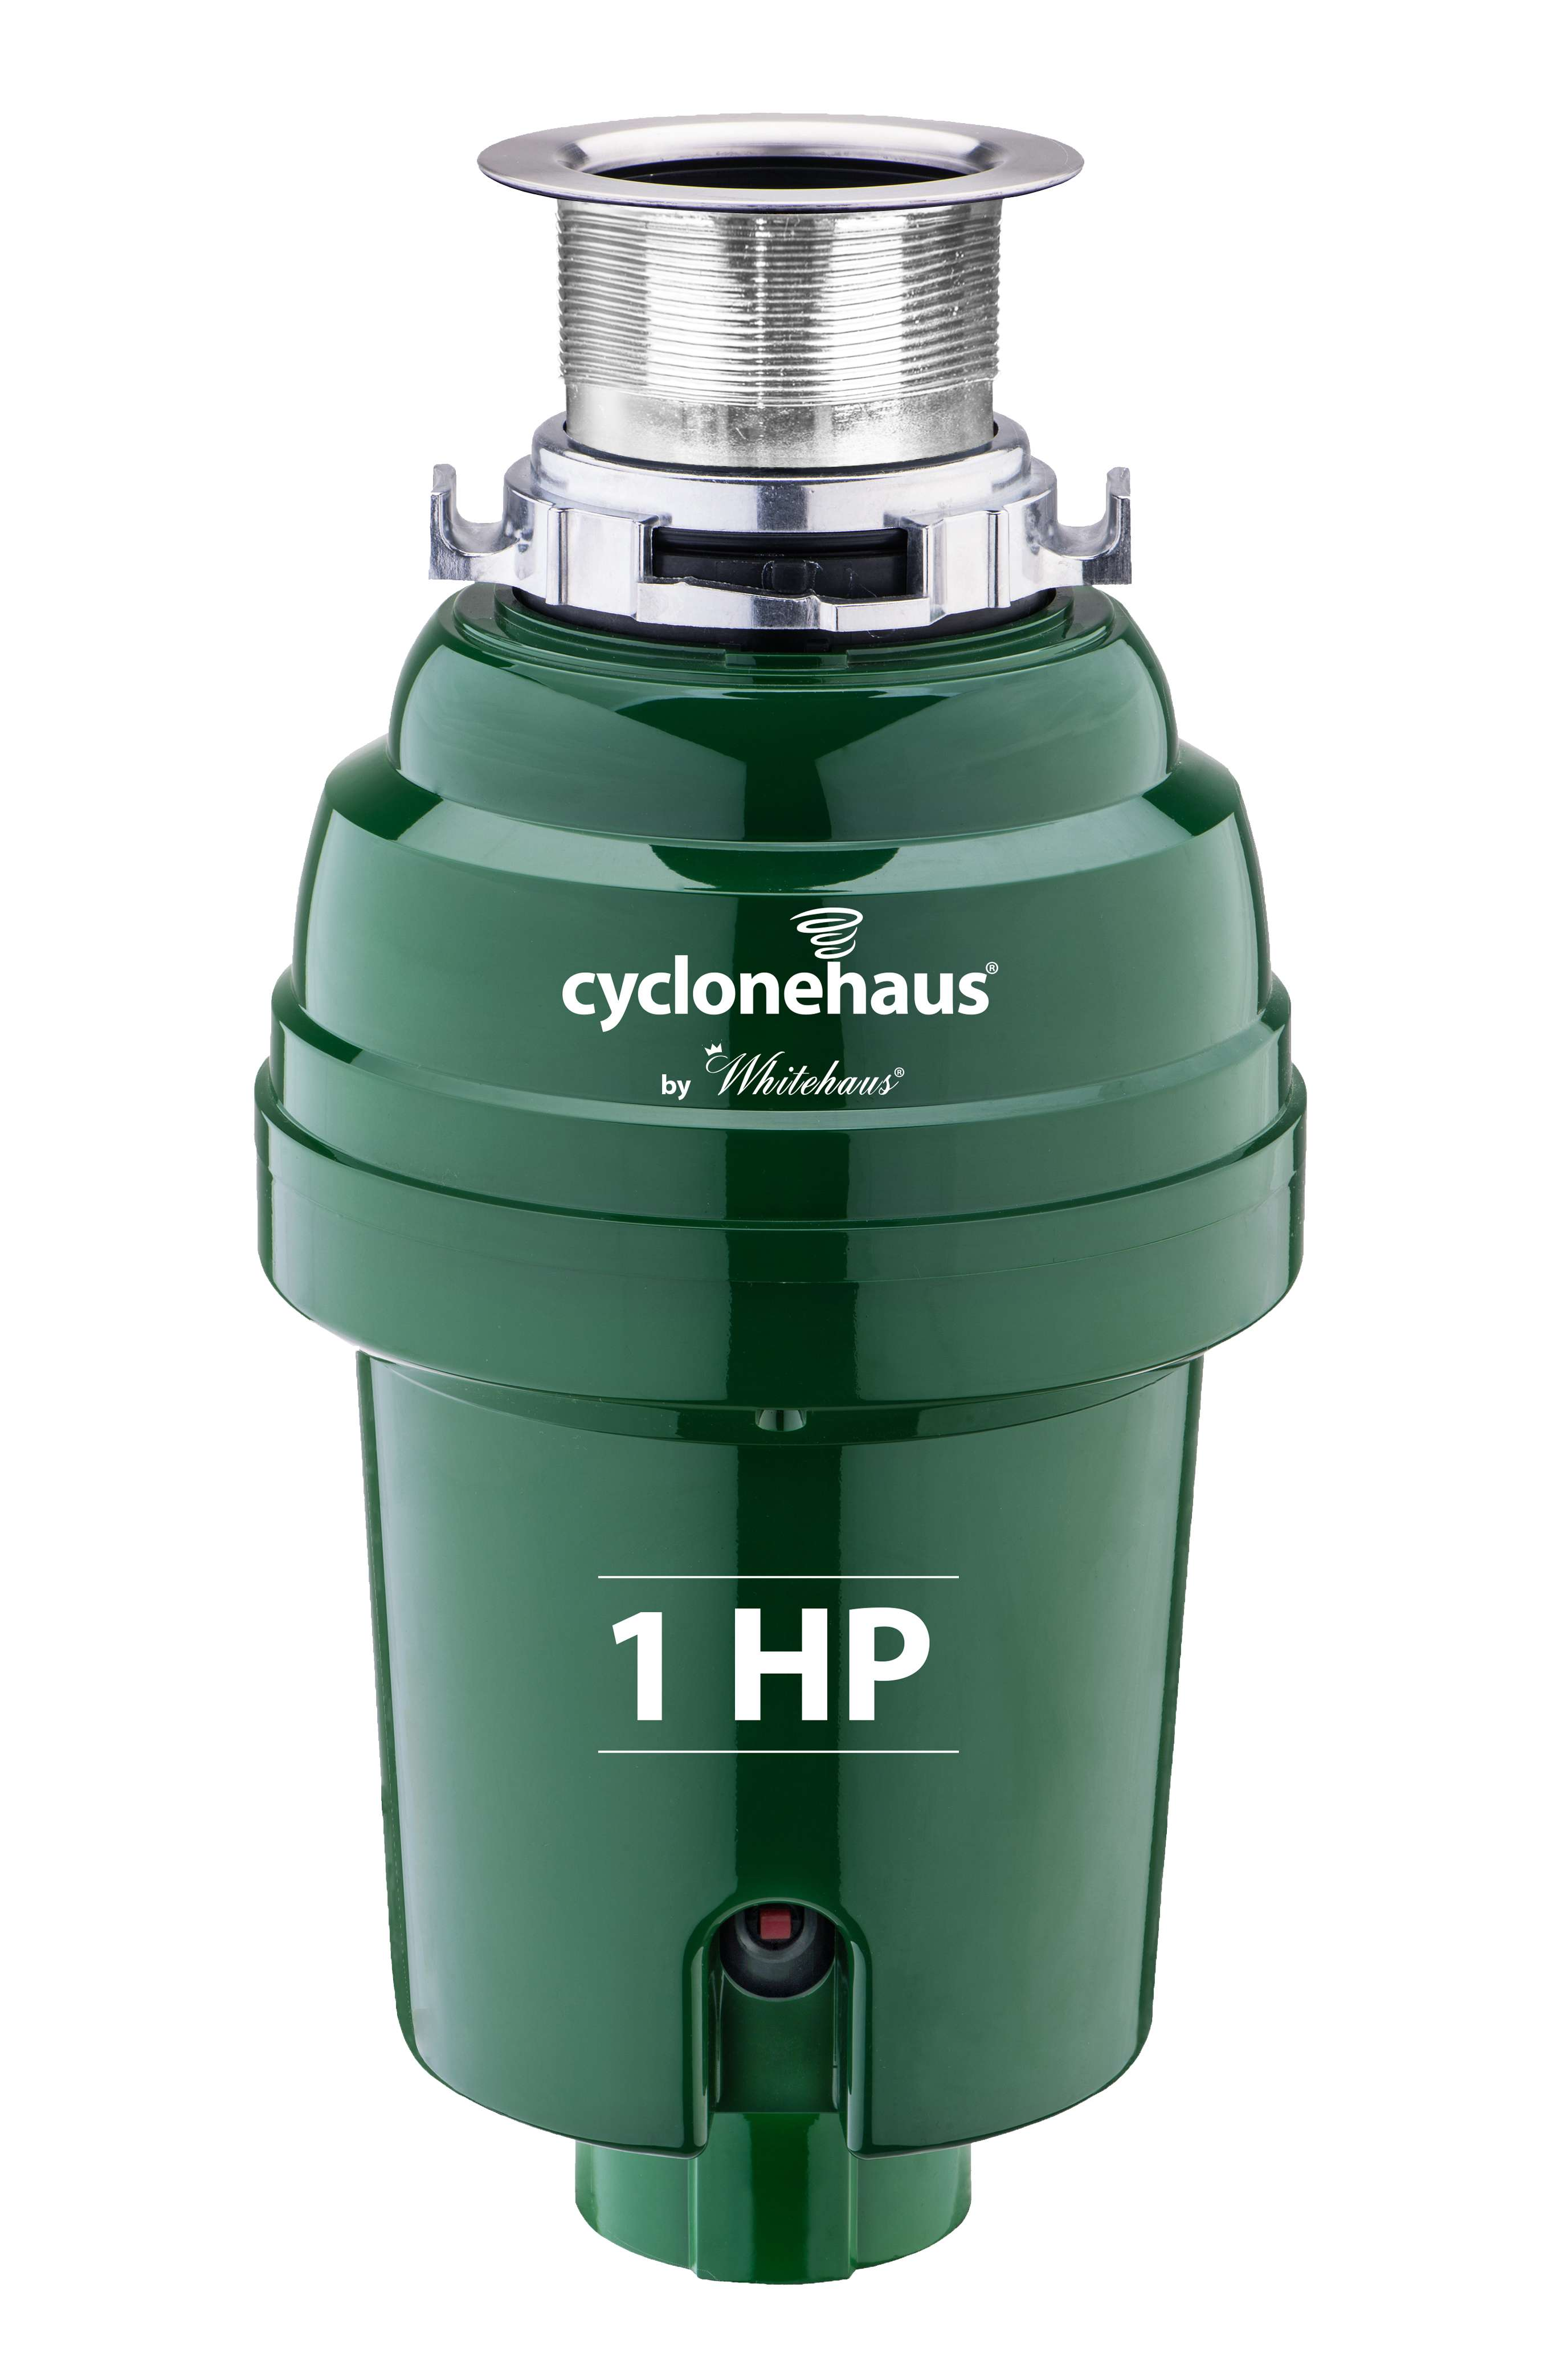 Cyclonehaus High Effciency Garbage Disposal with Solid Brass Flange in Polished Chrome